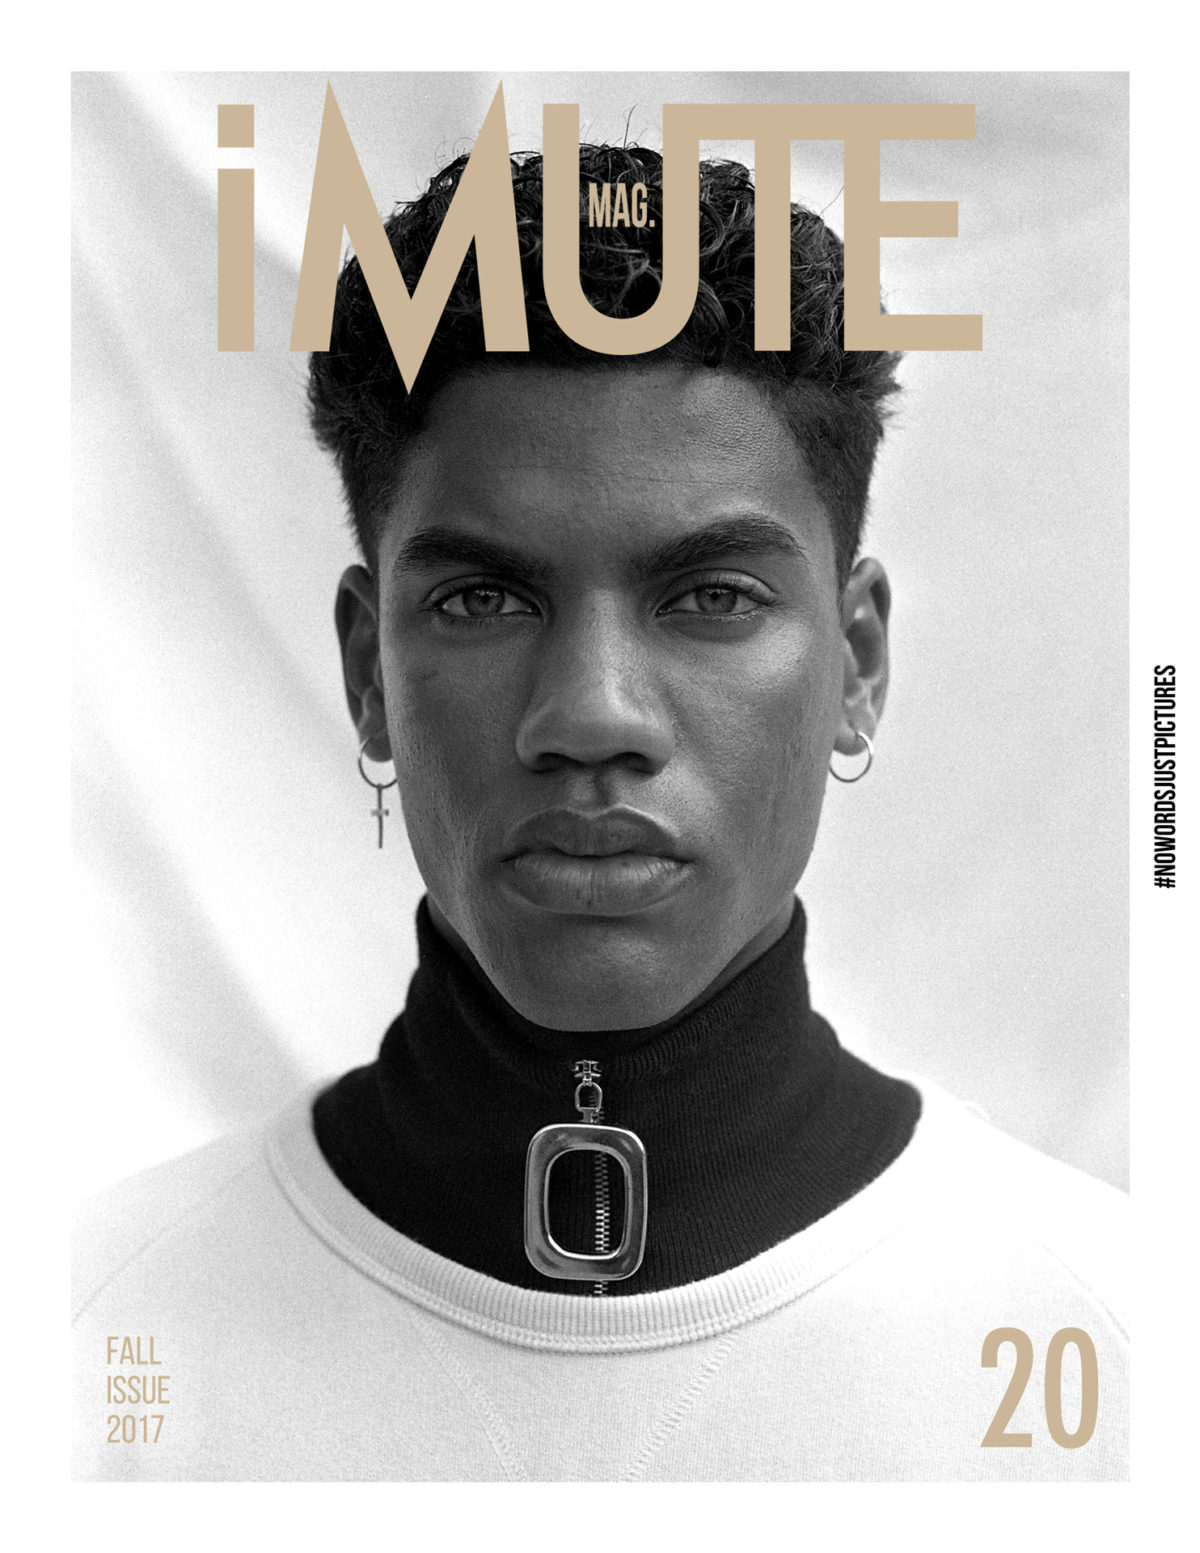 Cover iMute Magazine Fall Issue no 20 Photographer|Gemma Shepherd Model| Nicolas Van Graan @ 20 Management Stylists|Imran Mohamed & Rebecca Odendaal